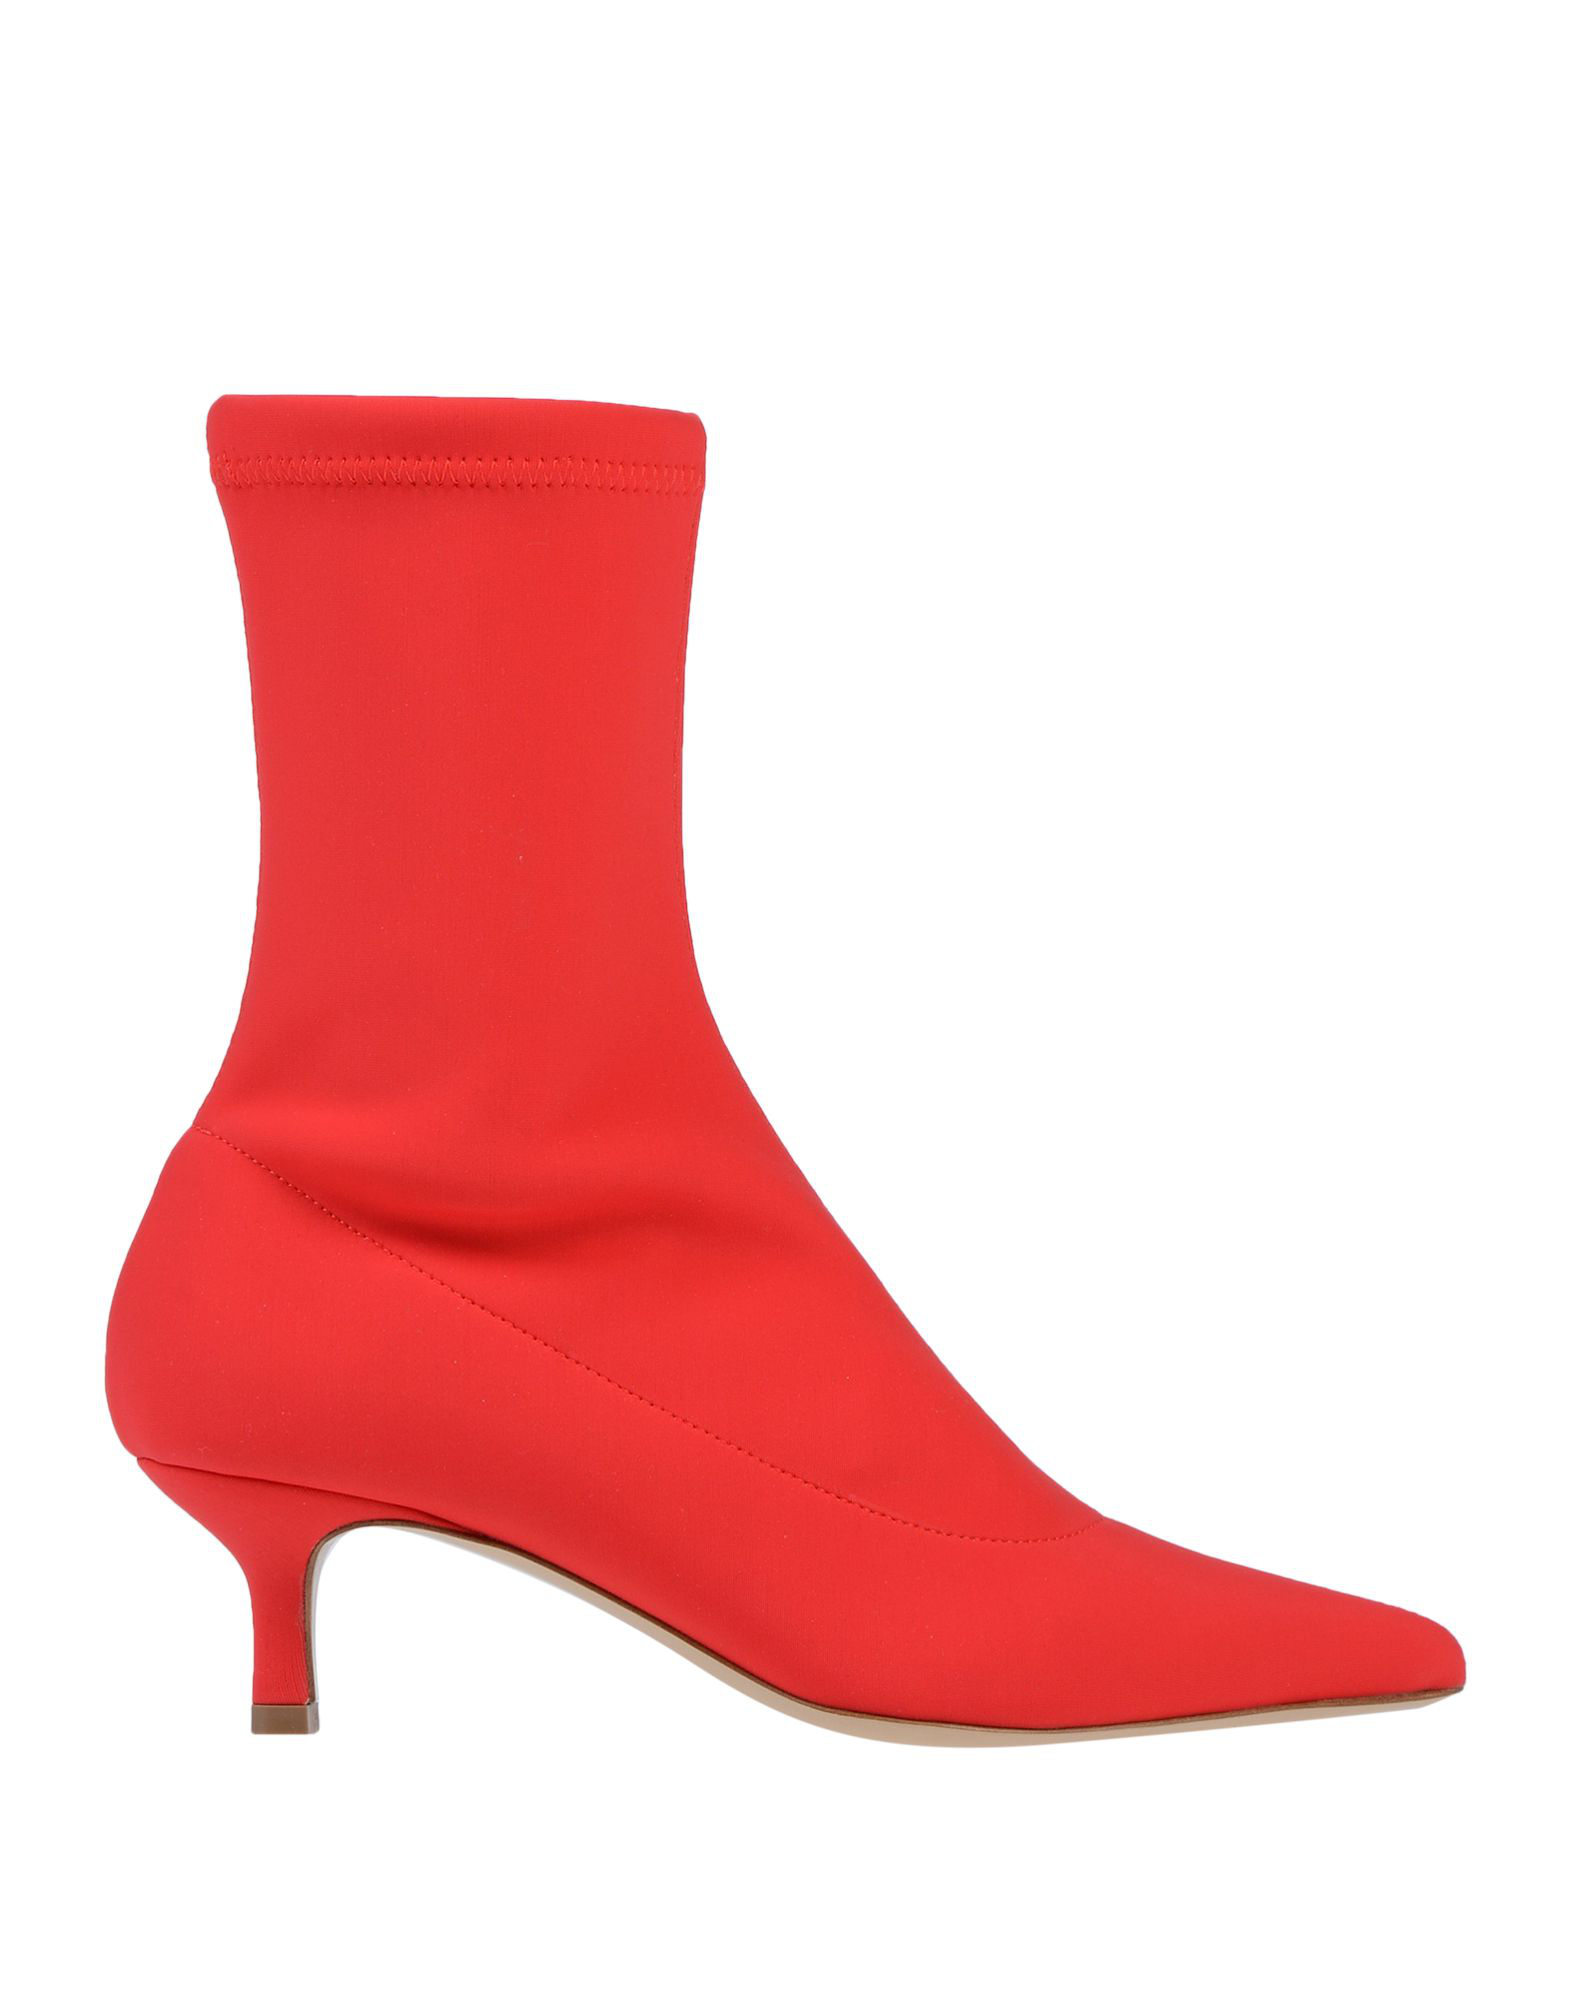 0cb37390db9b Aldo Castagna Ankle Boots In Red